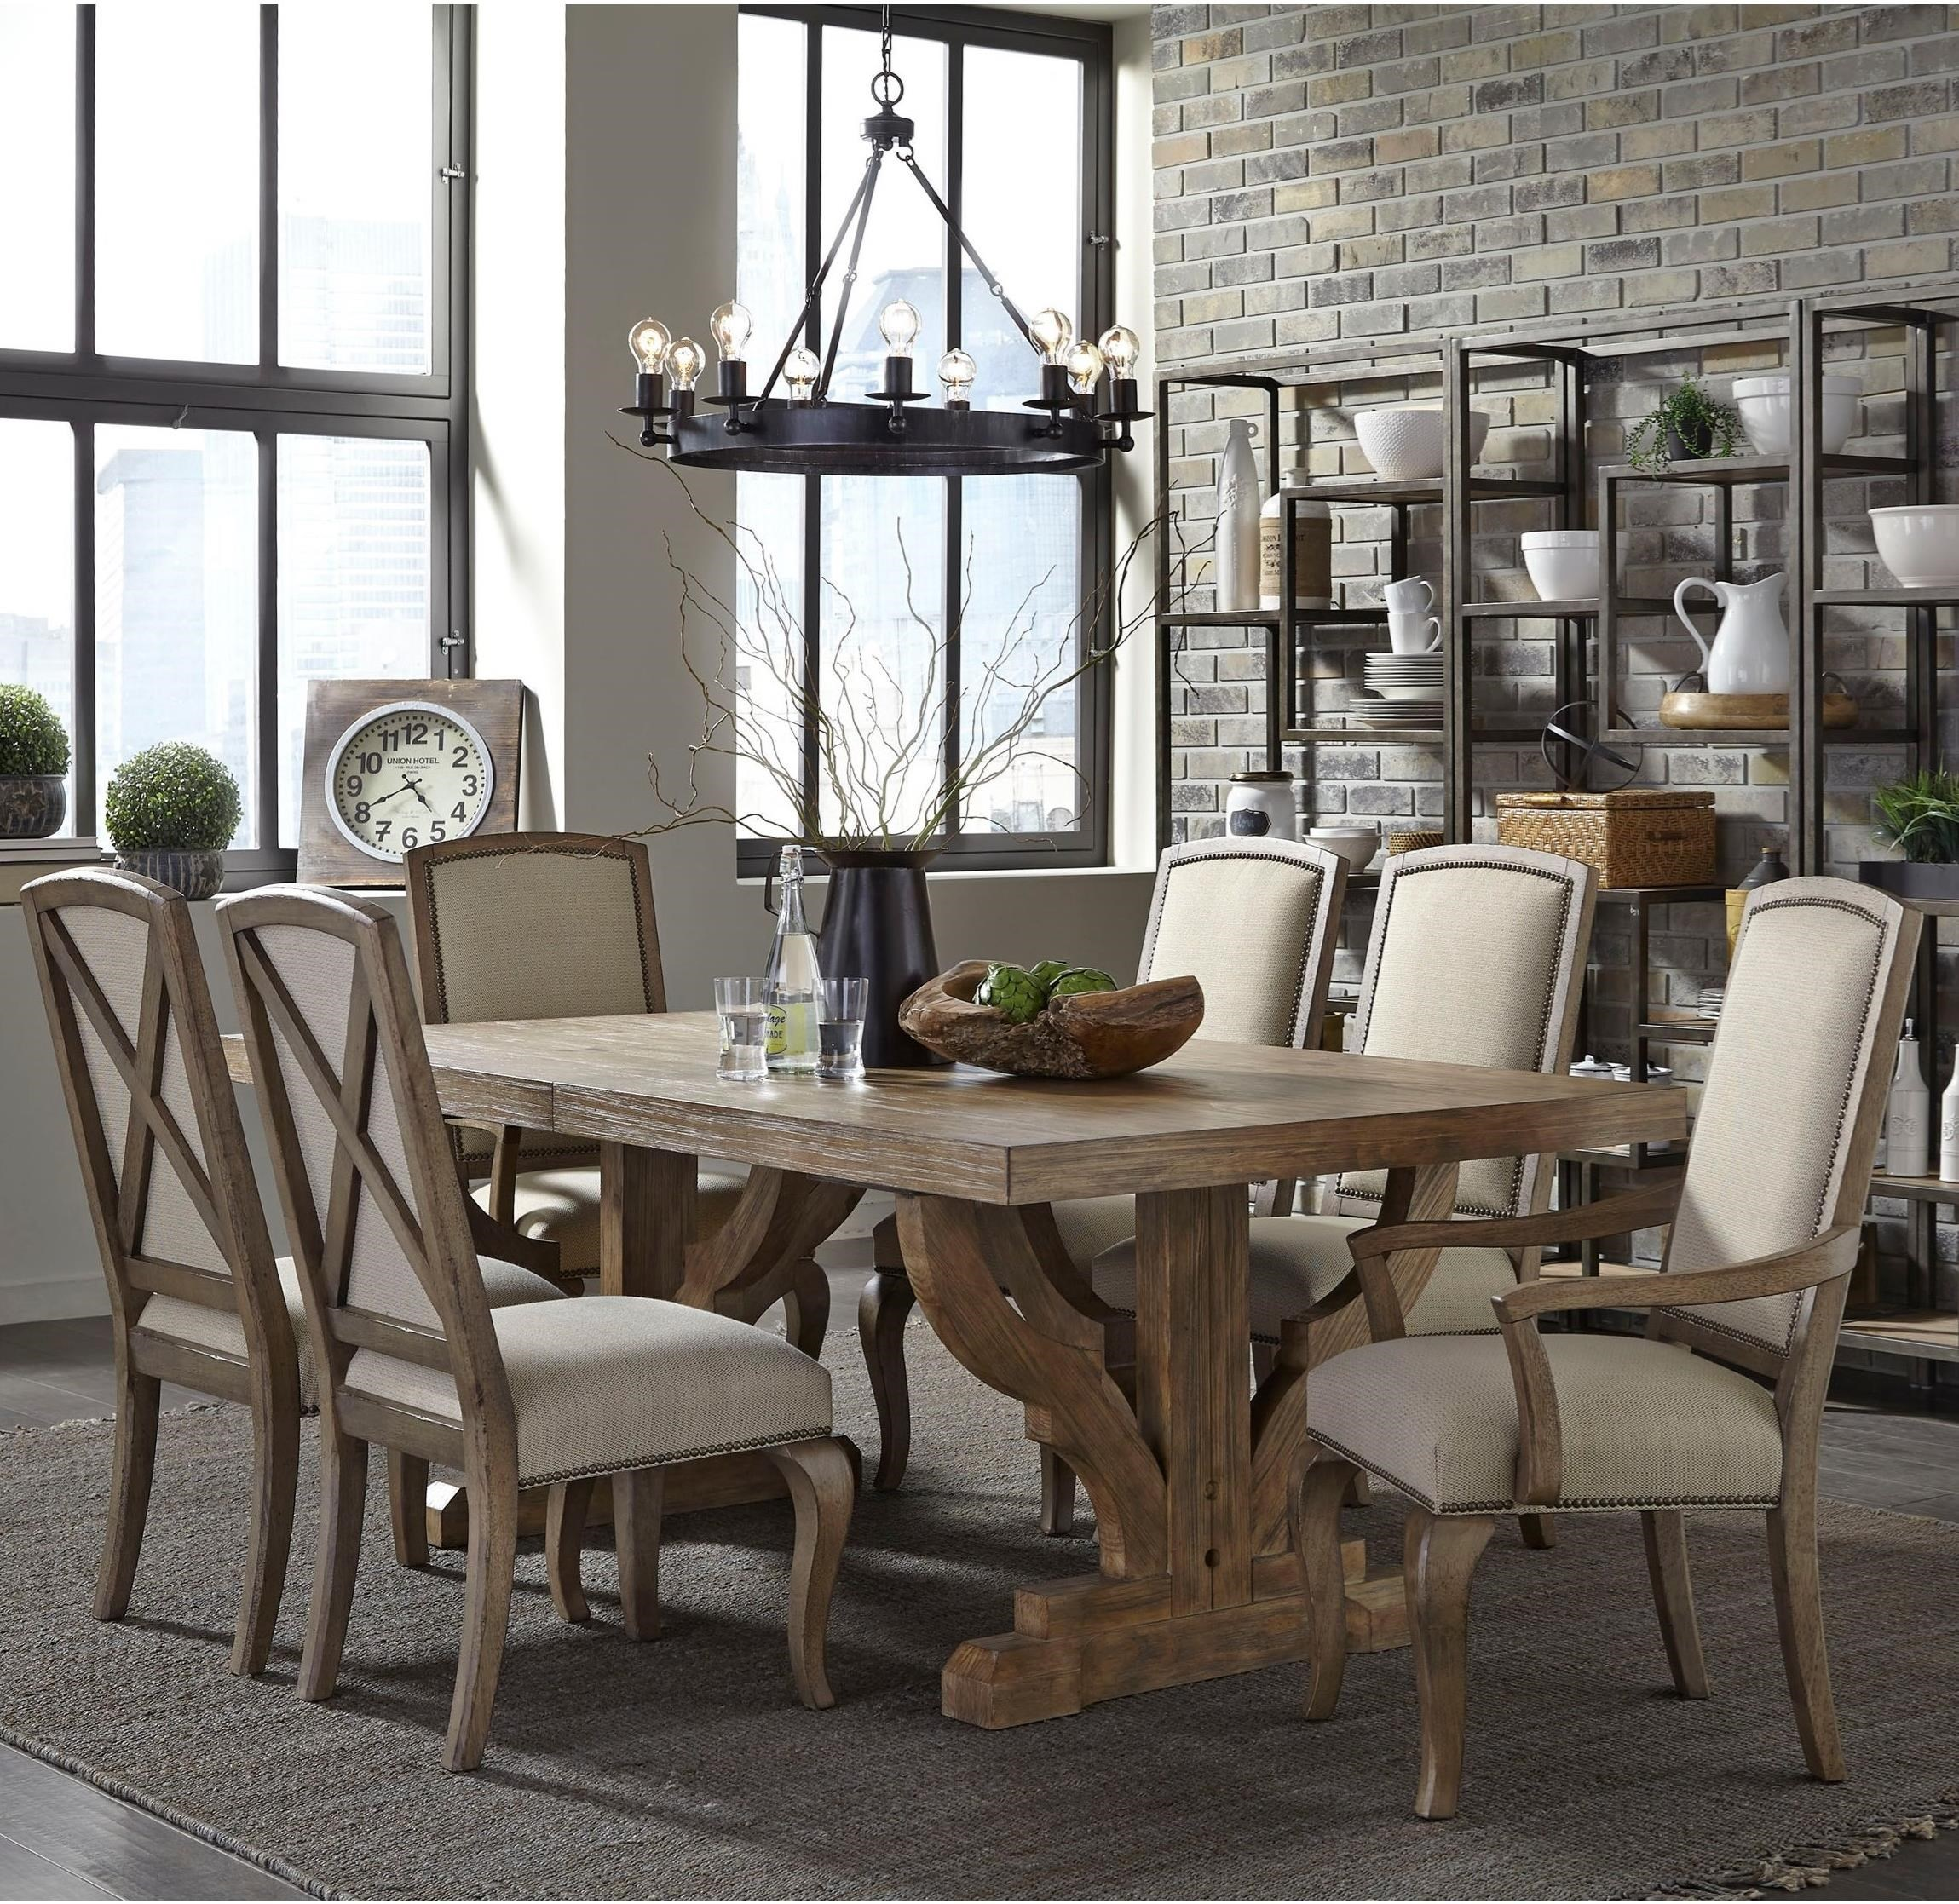 dining room tables with upholstered chairs. broyhill furniture bedford avenue 7 piece double pedestal table and upholstered chair set - baer\u0027s dining (or more) sets room tables with chairs l